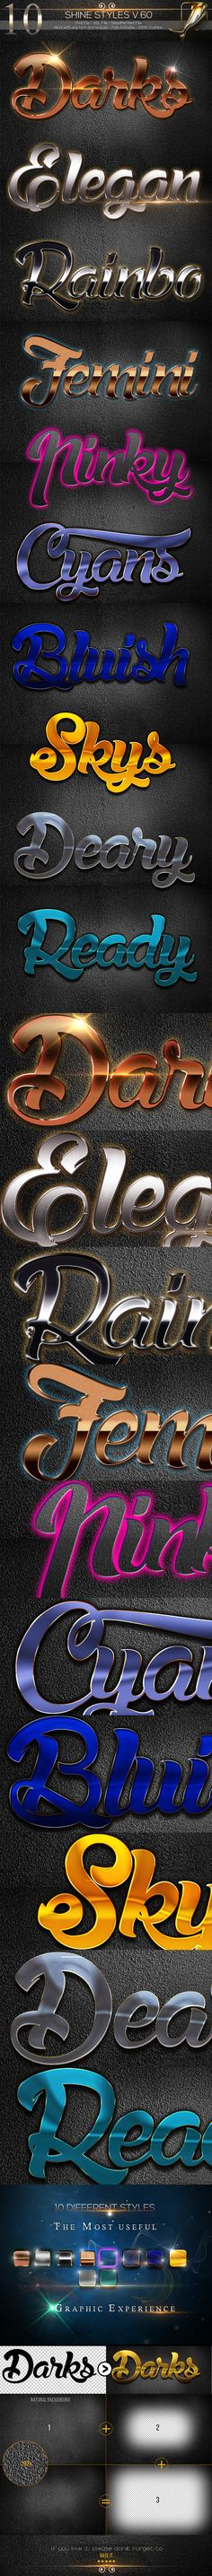 Text Style for Photoshop. Download: http://graphicriver.net/item/text-style-v60jan/14461921?ref=ksioks